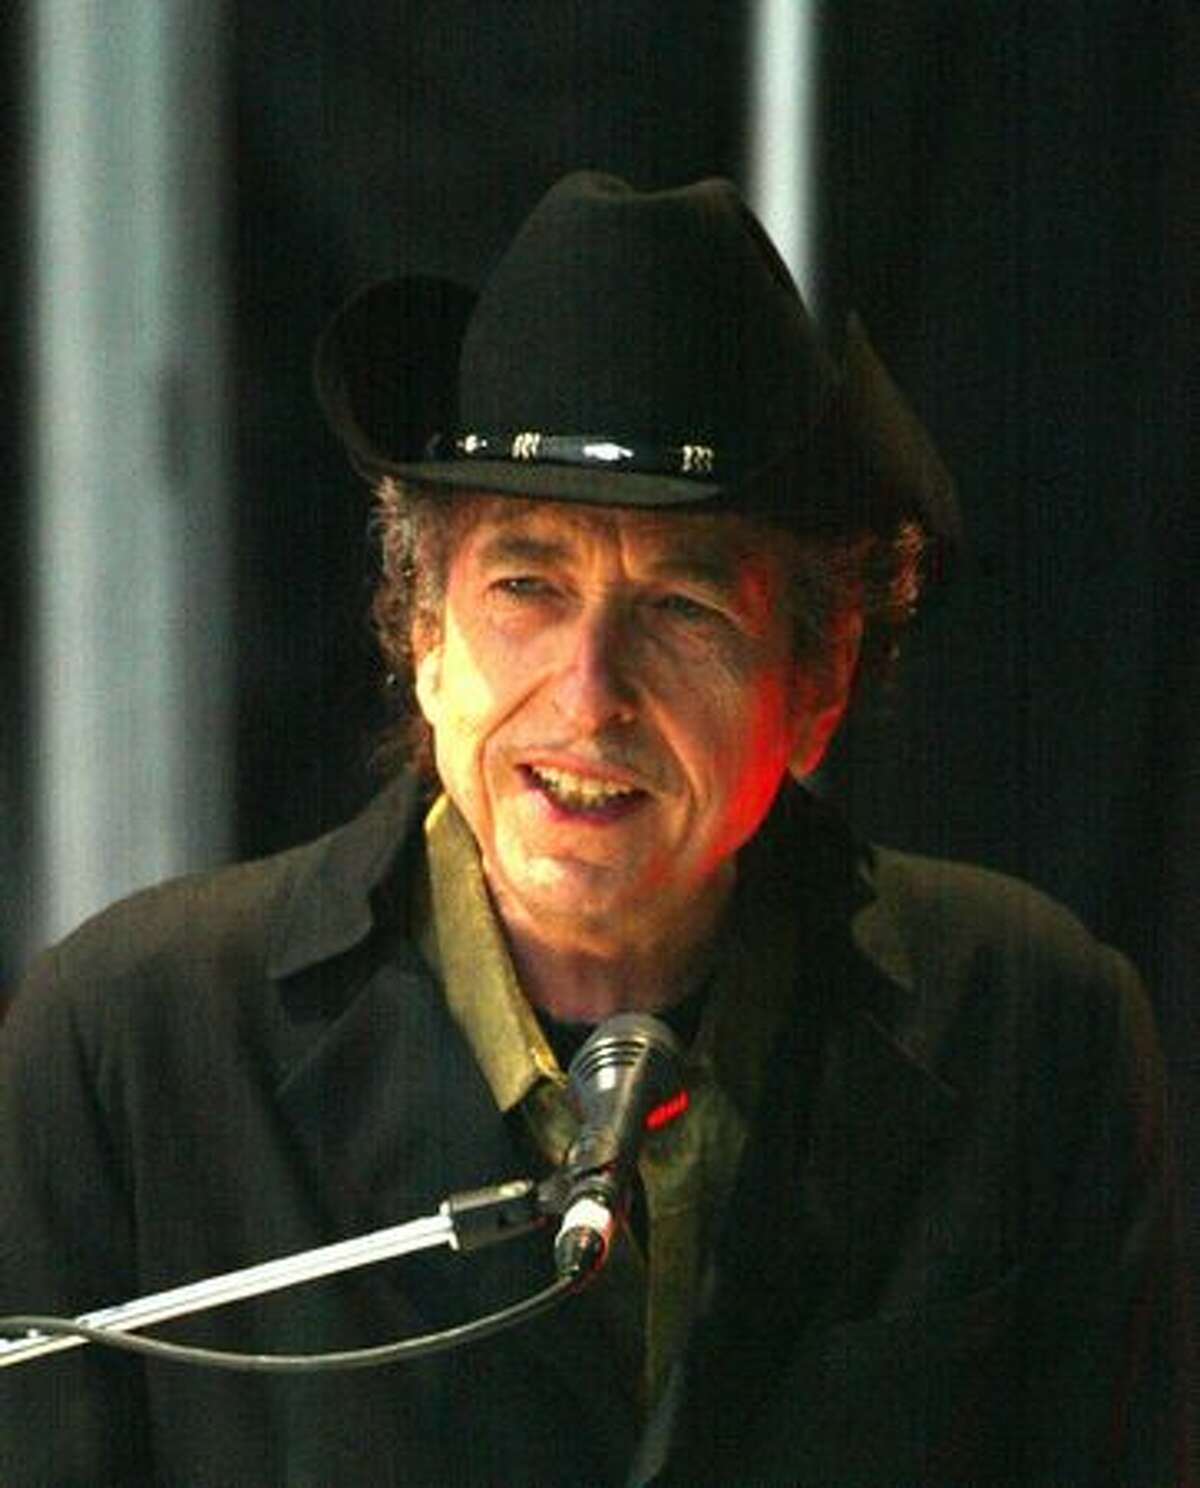 We scoured the web to see whose vocals some rock music fans just can't stand. Who is your vote for worst singer in rock music? Leave a comment. Bob Dylan: Hear a sample. (Photo by Dave Hogan/Getty Images)